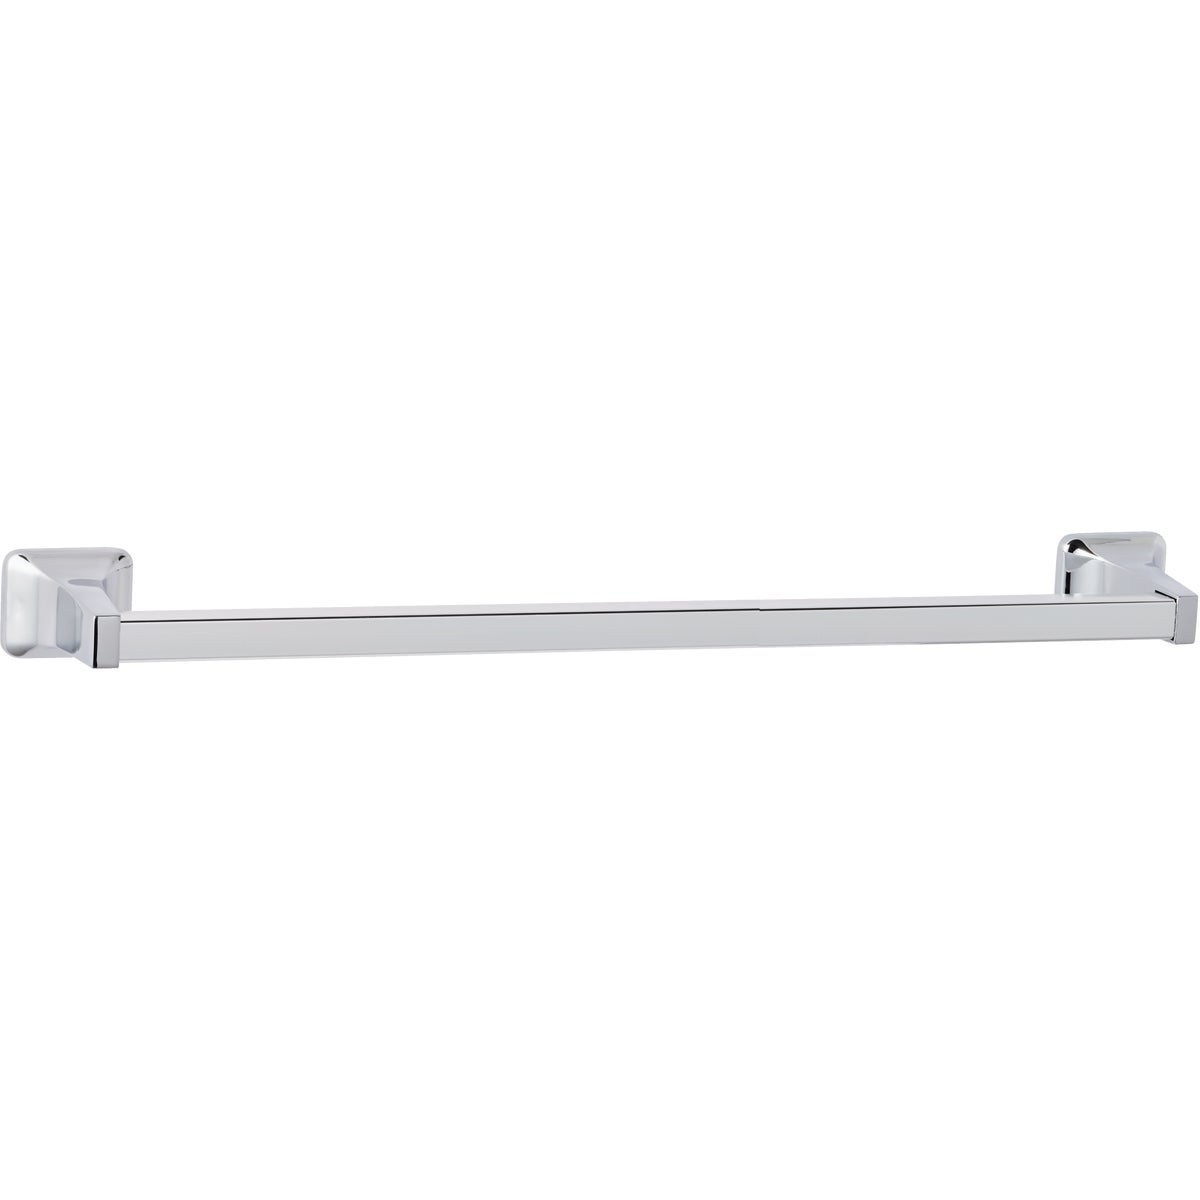 "24"" CHROME TOWEL BAR"